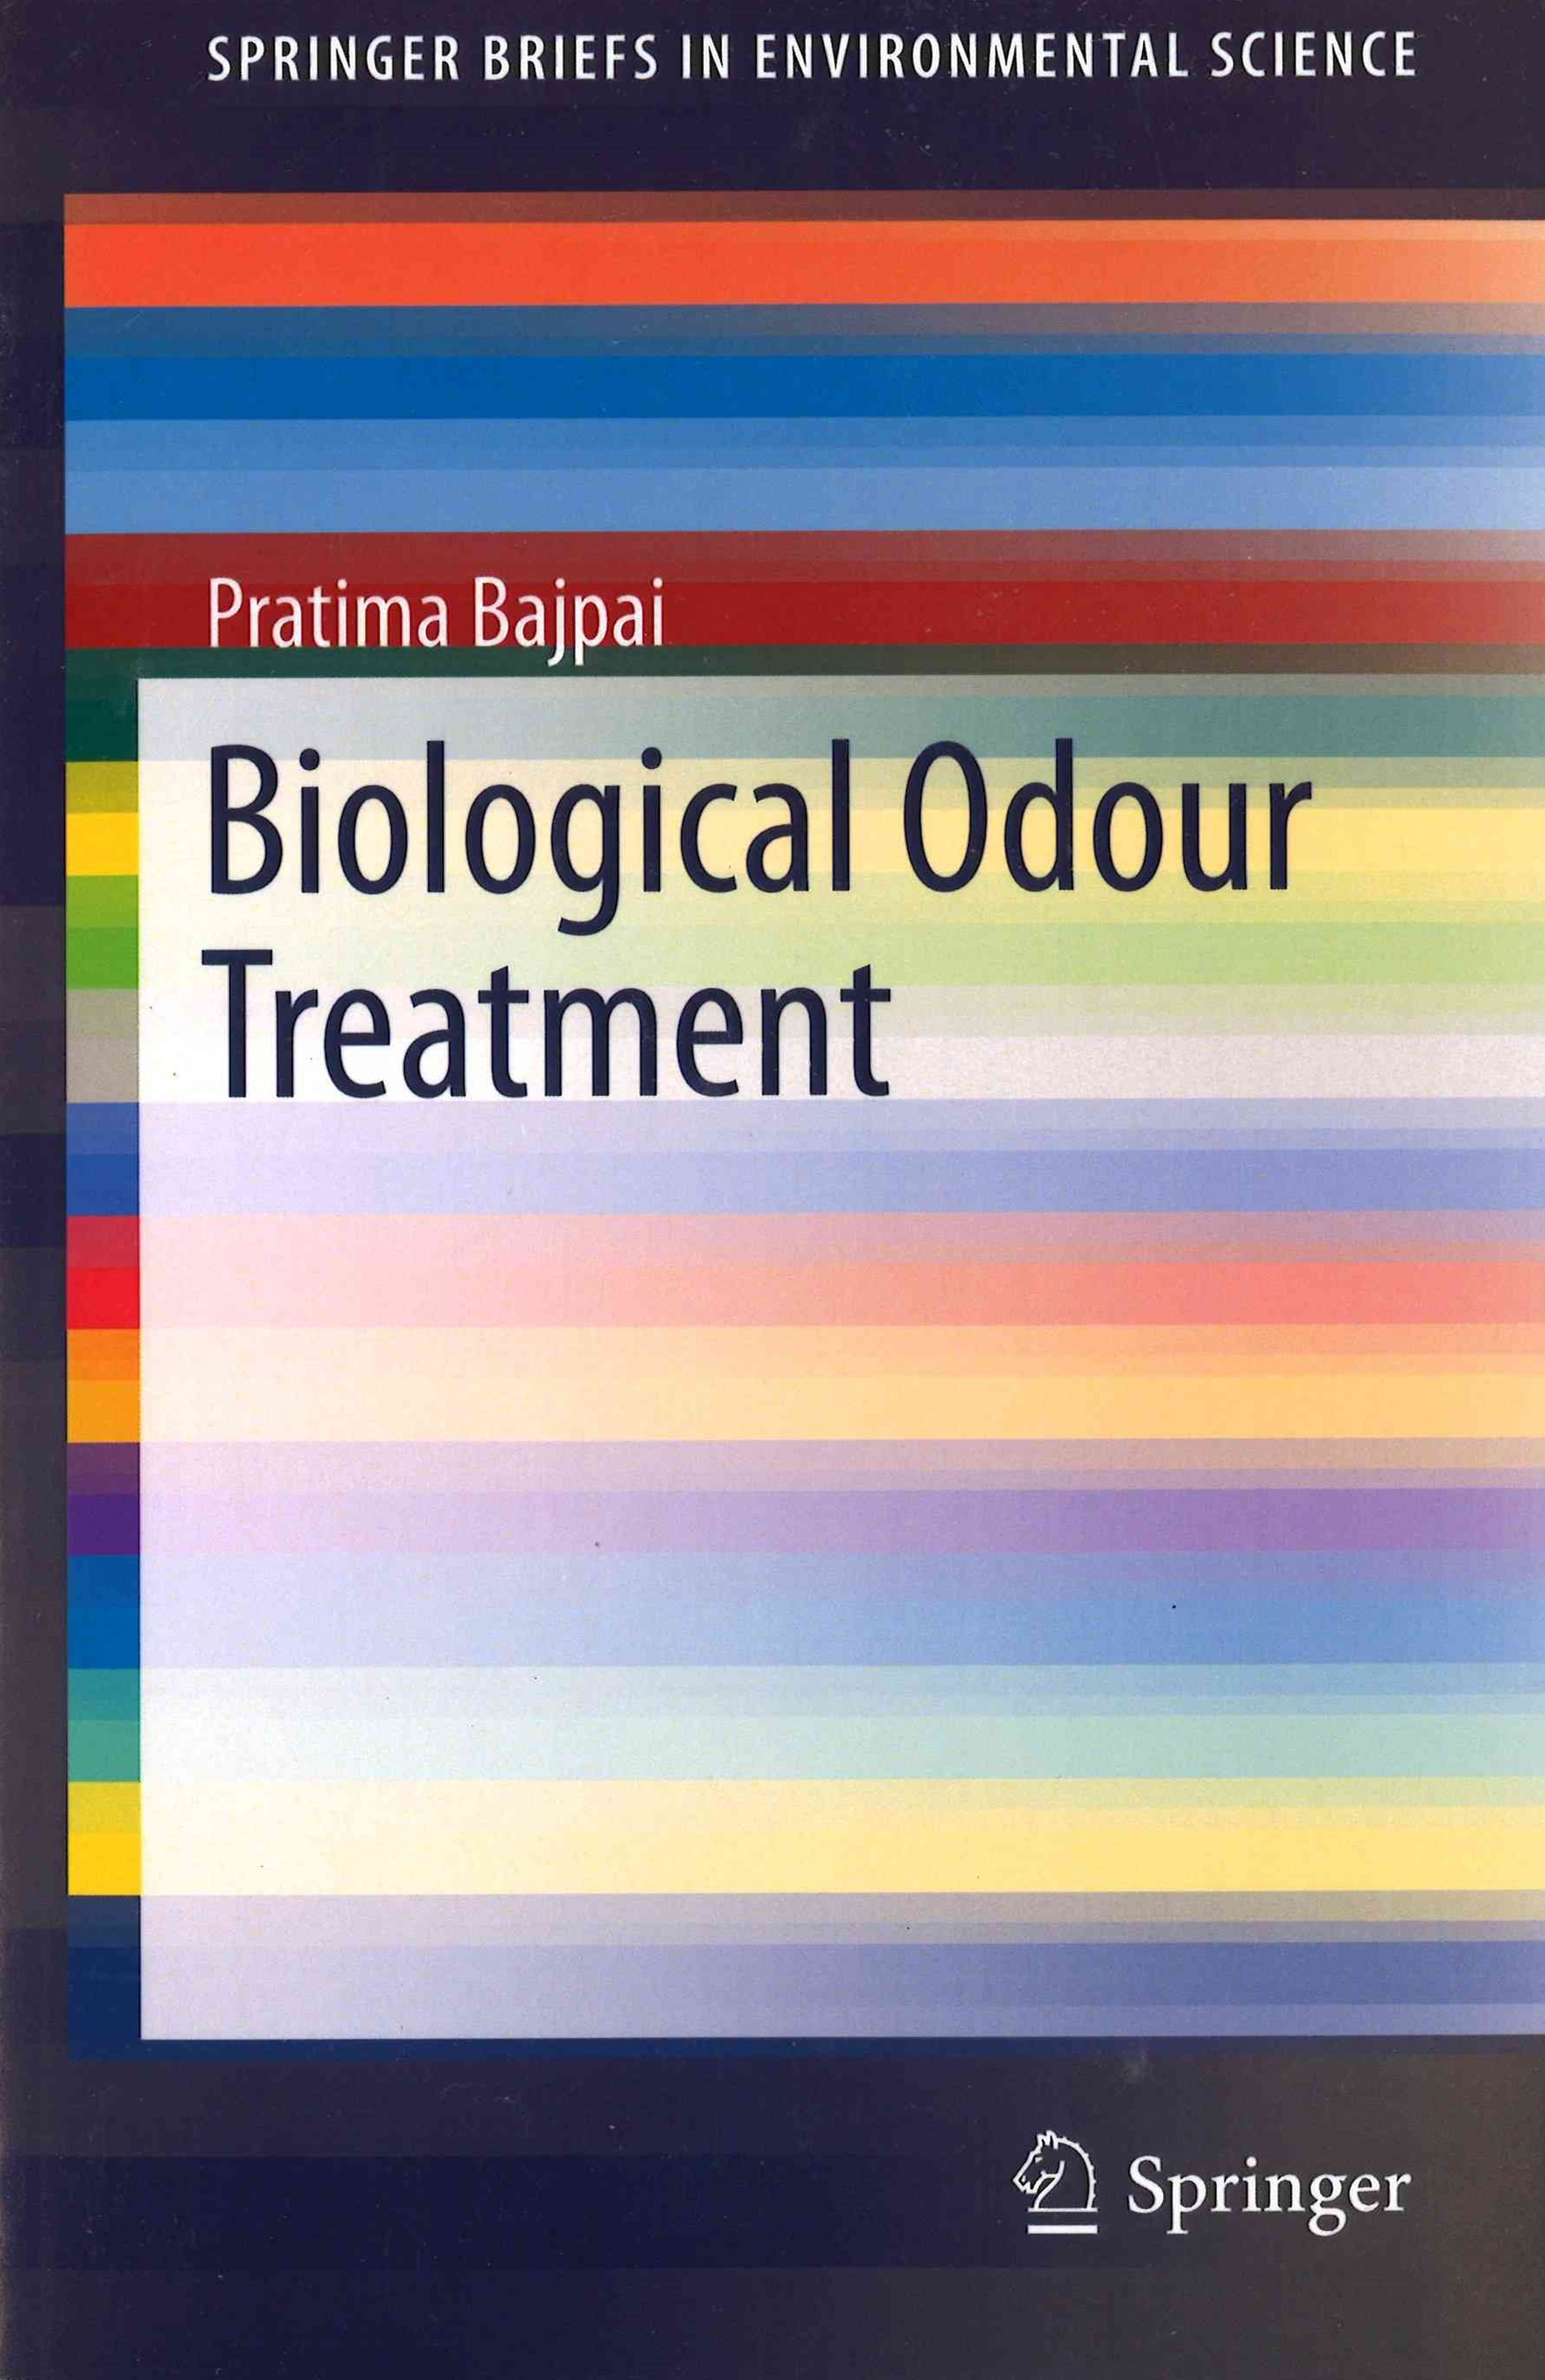 Biological Odour Treatment